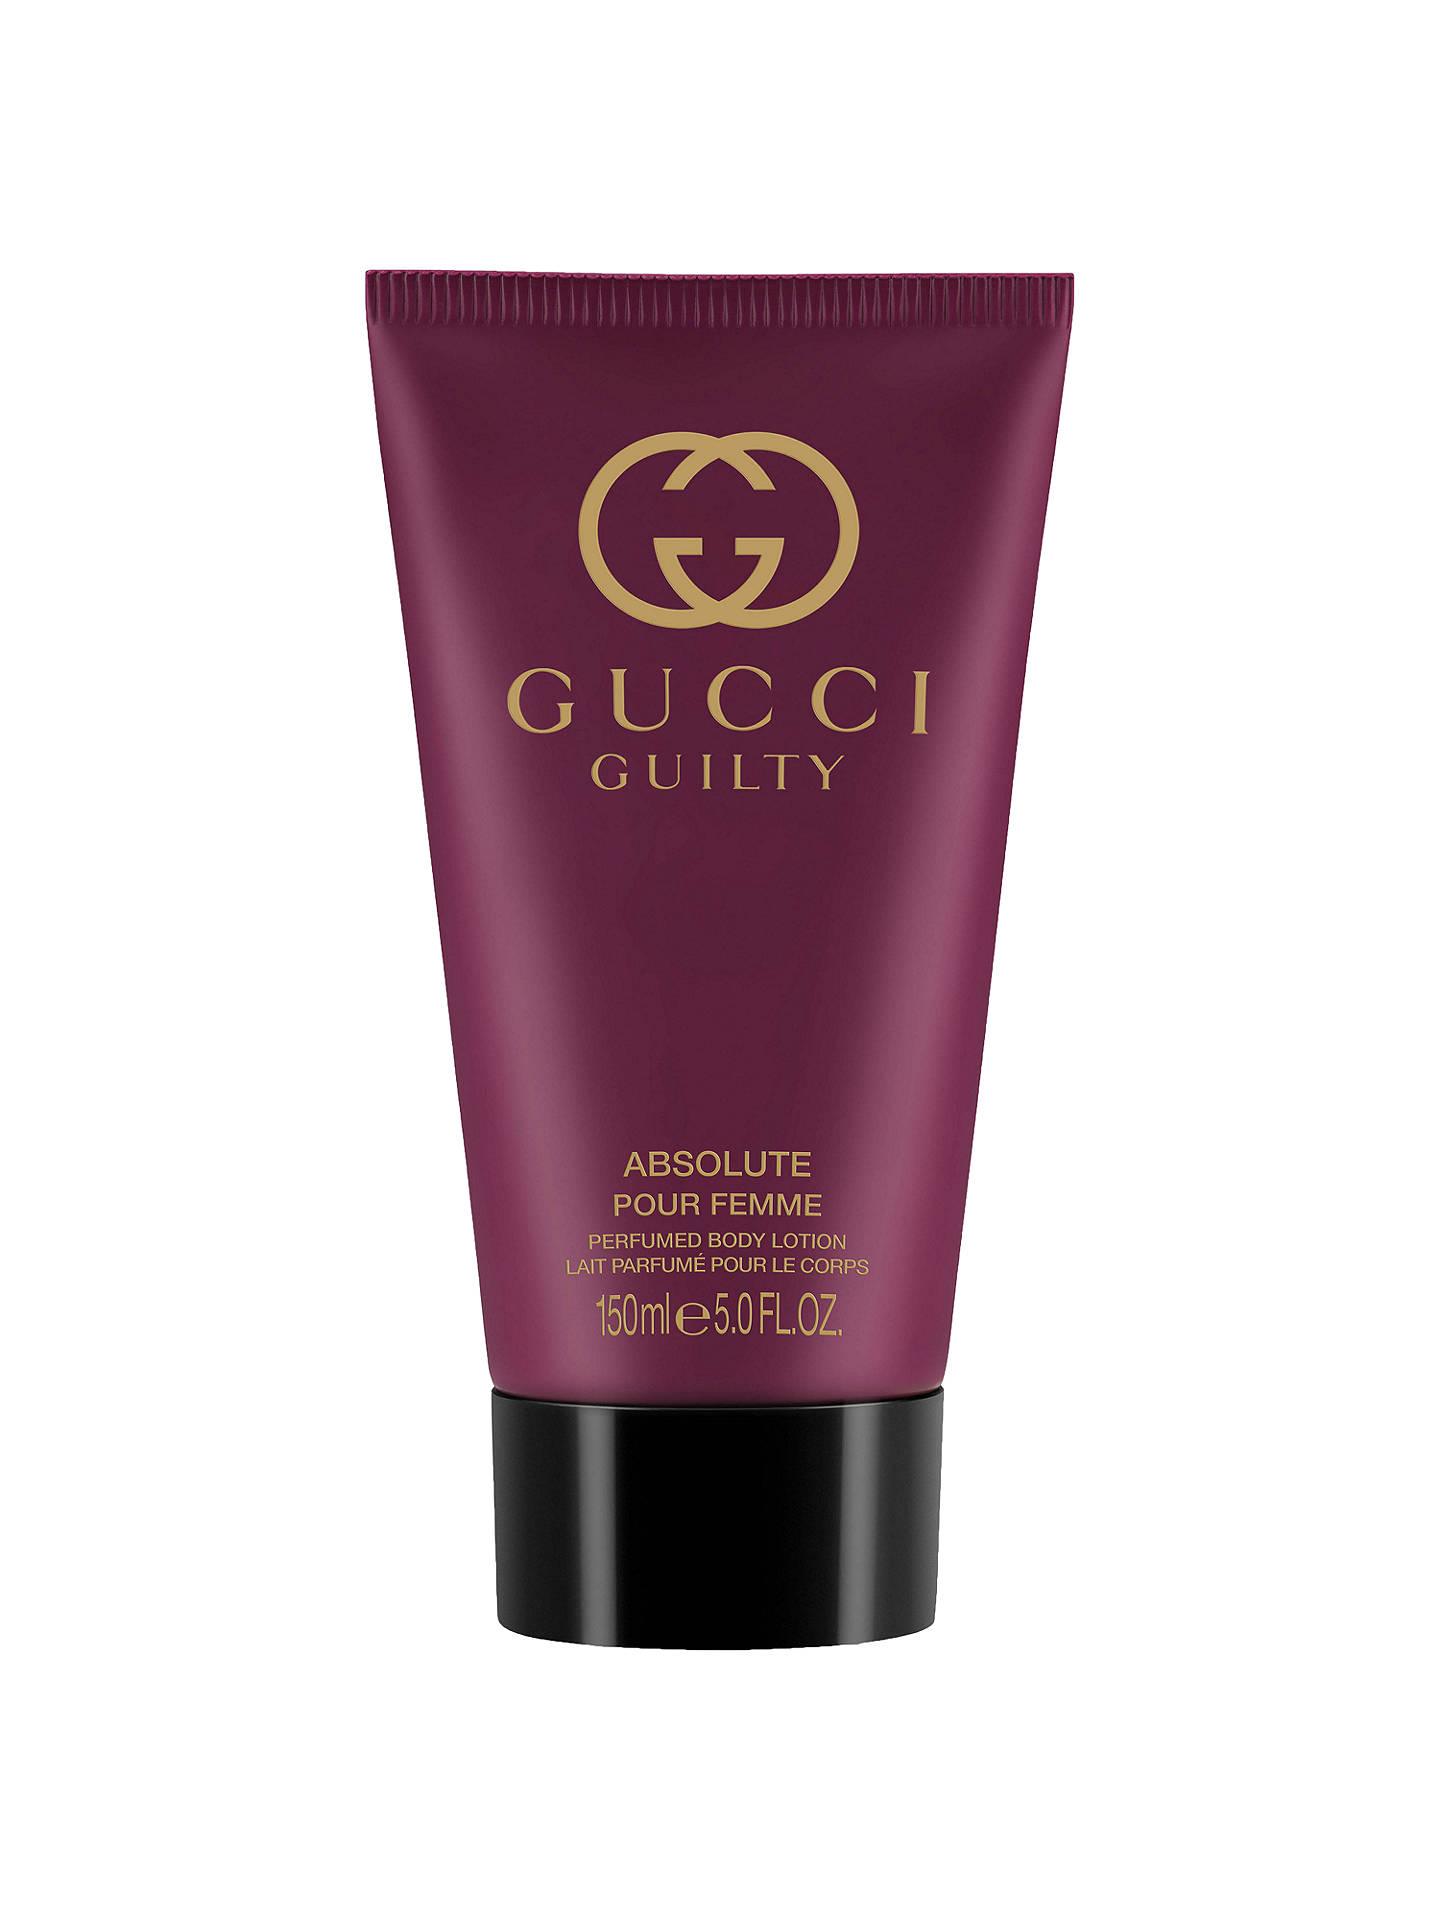 Gucci Guilty Absolute Eau De Parfum For Her Body Lotion 150ml At